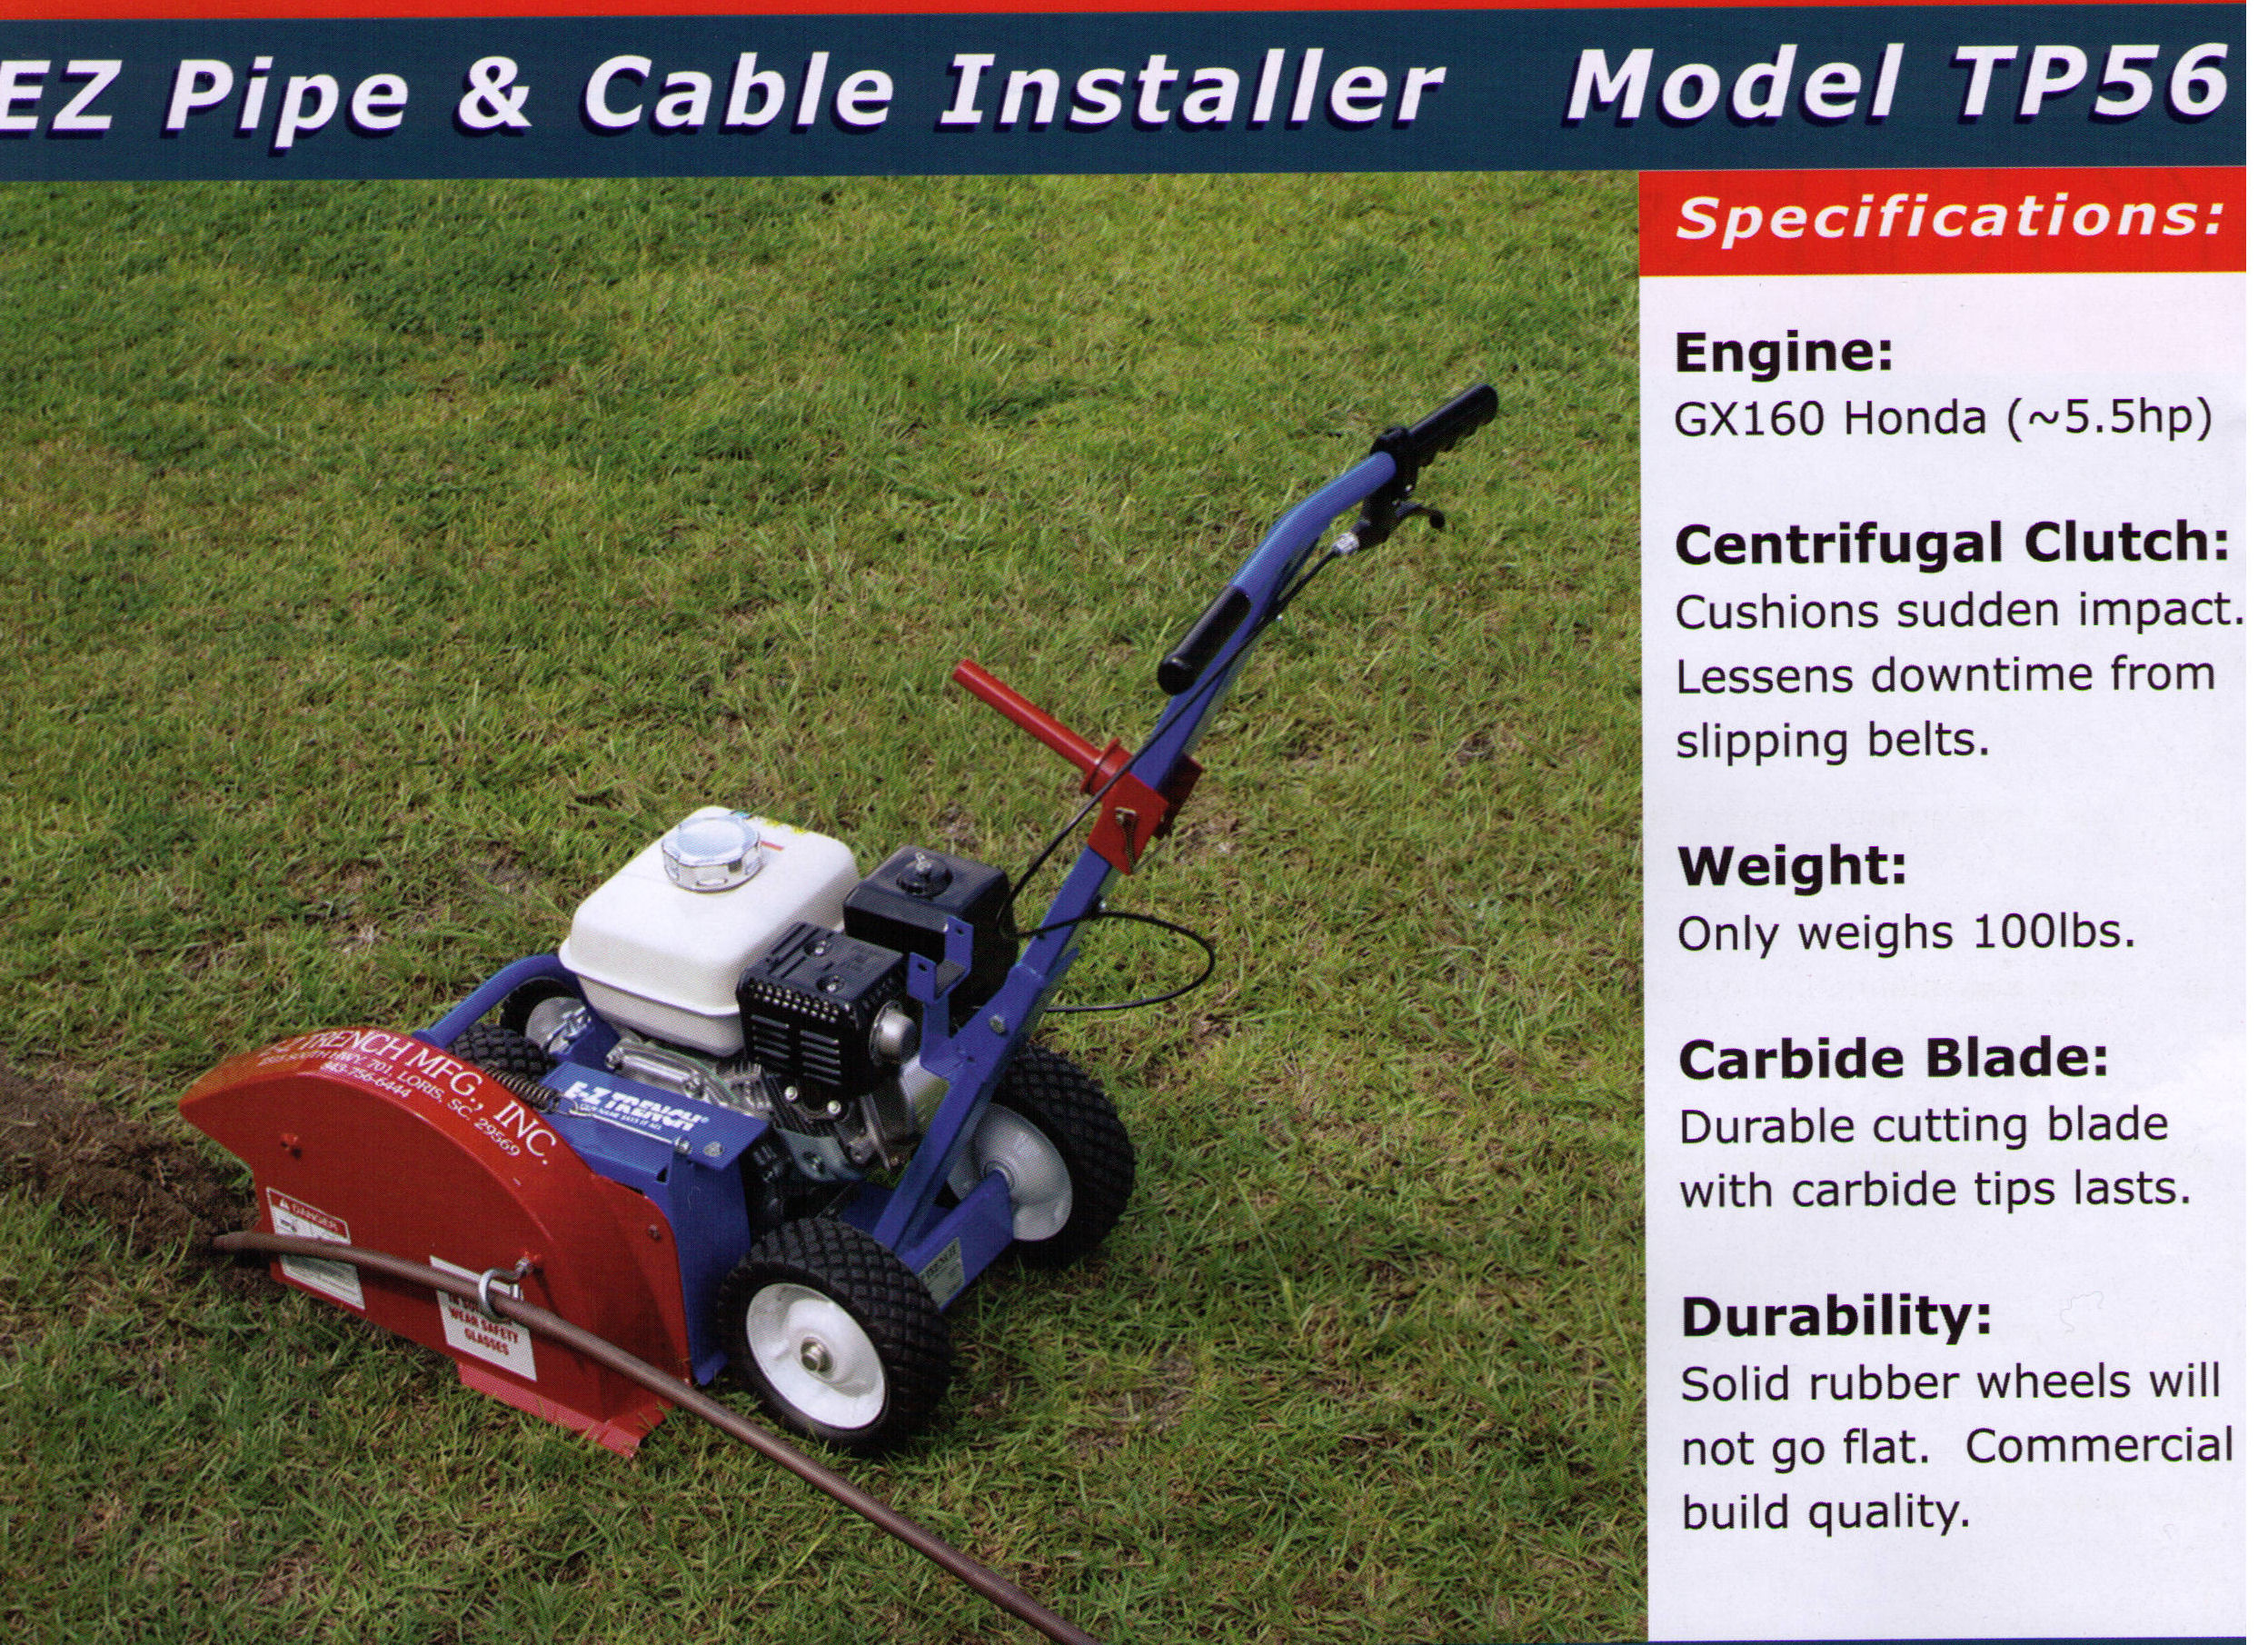 Specifications Model TP56 EZ Pipe And Cable Installer - www.wikco.com